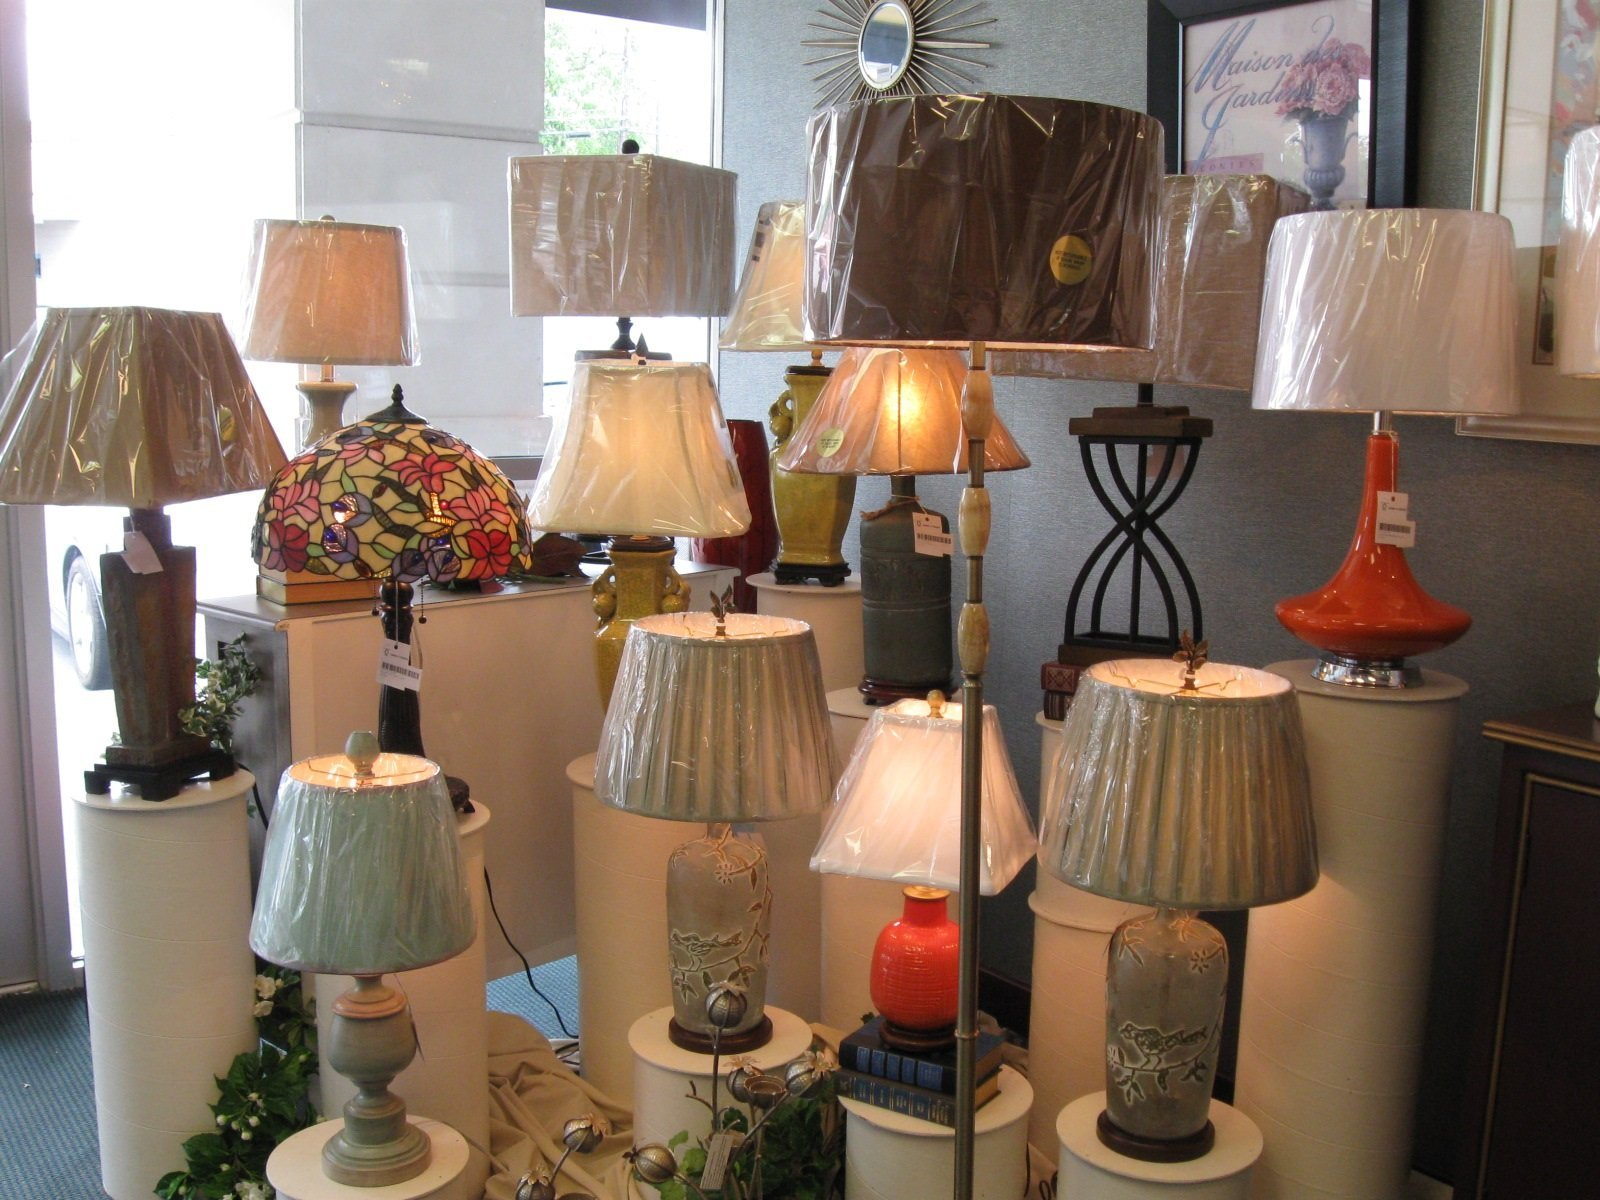 Lamps shades winston salem nc table lamps we want your shopping experience to be a pleasurable one and we work hard to make that happen geotapseo Images